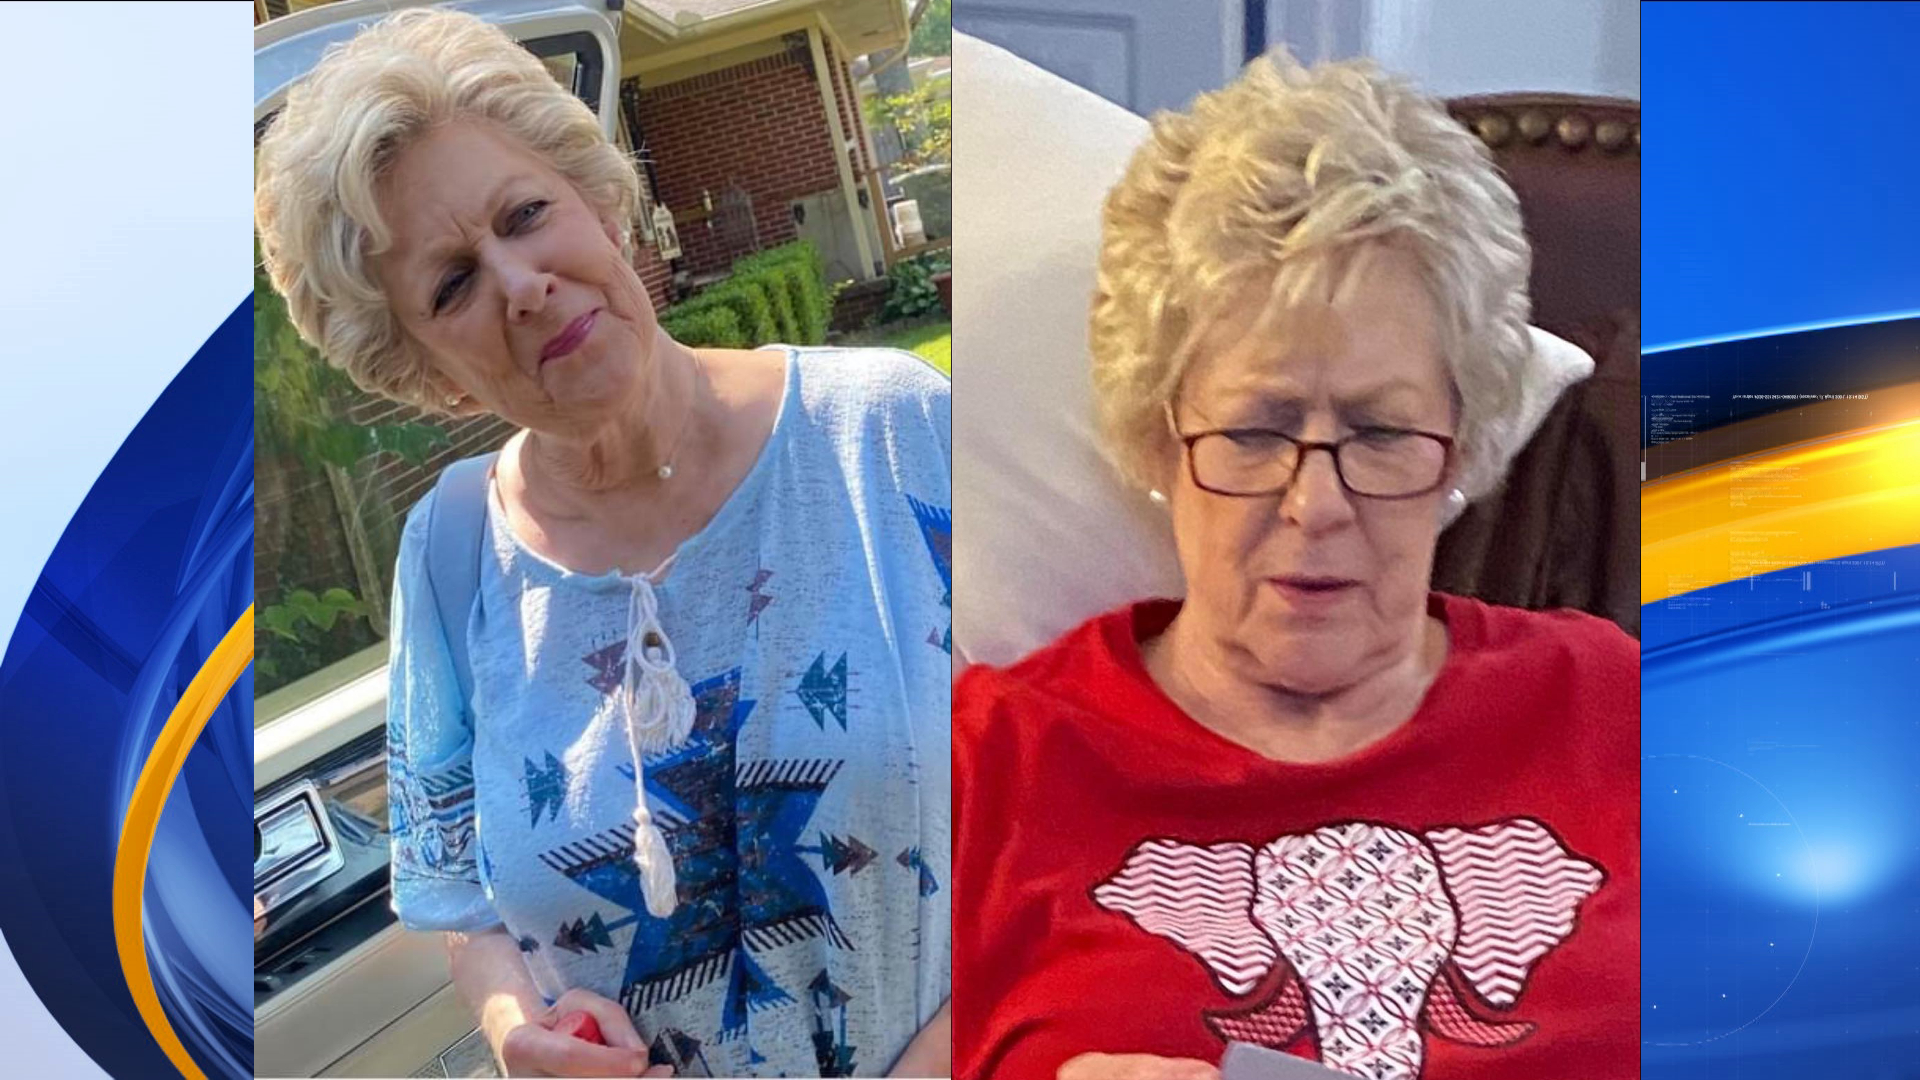 The Madison County Sheriff's Office said Susan McDaniel Lee was last seen around 1:15 p.m. Sunday at the Sparkman Drive Walmart.